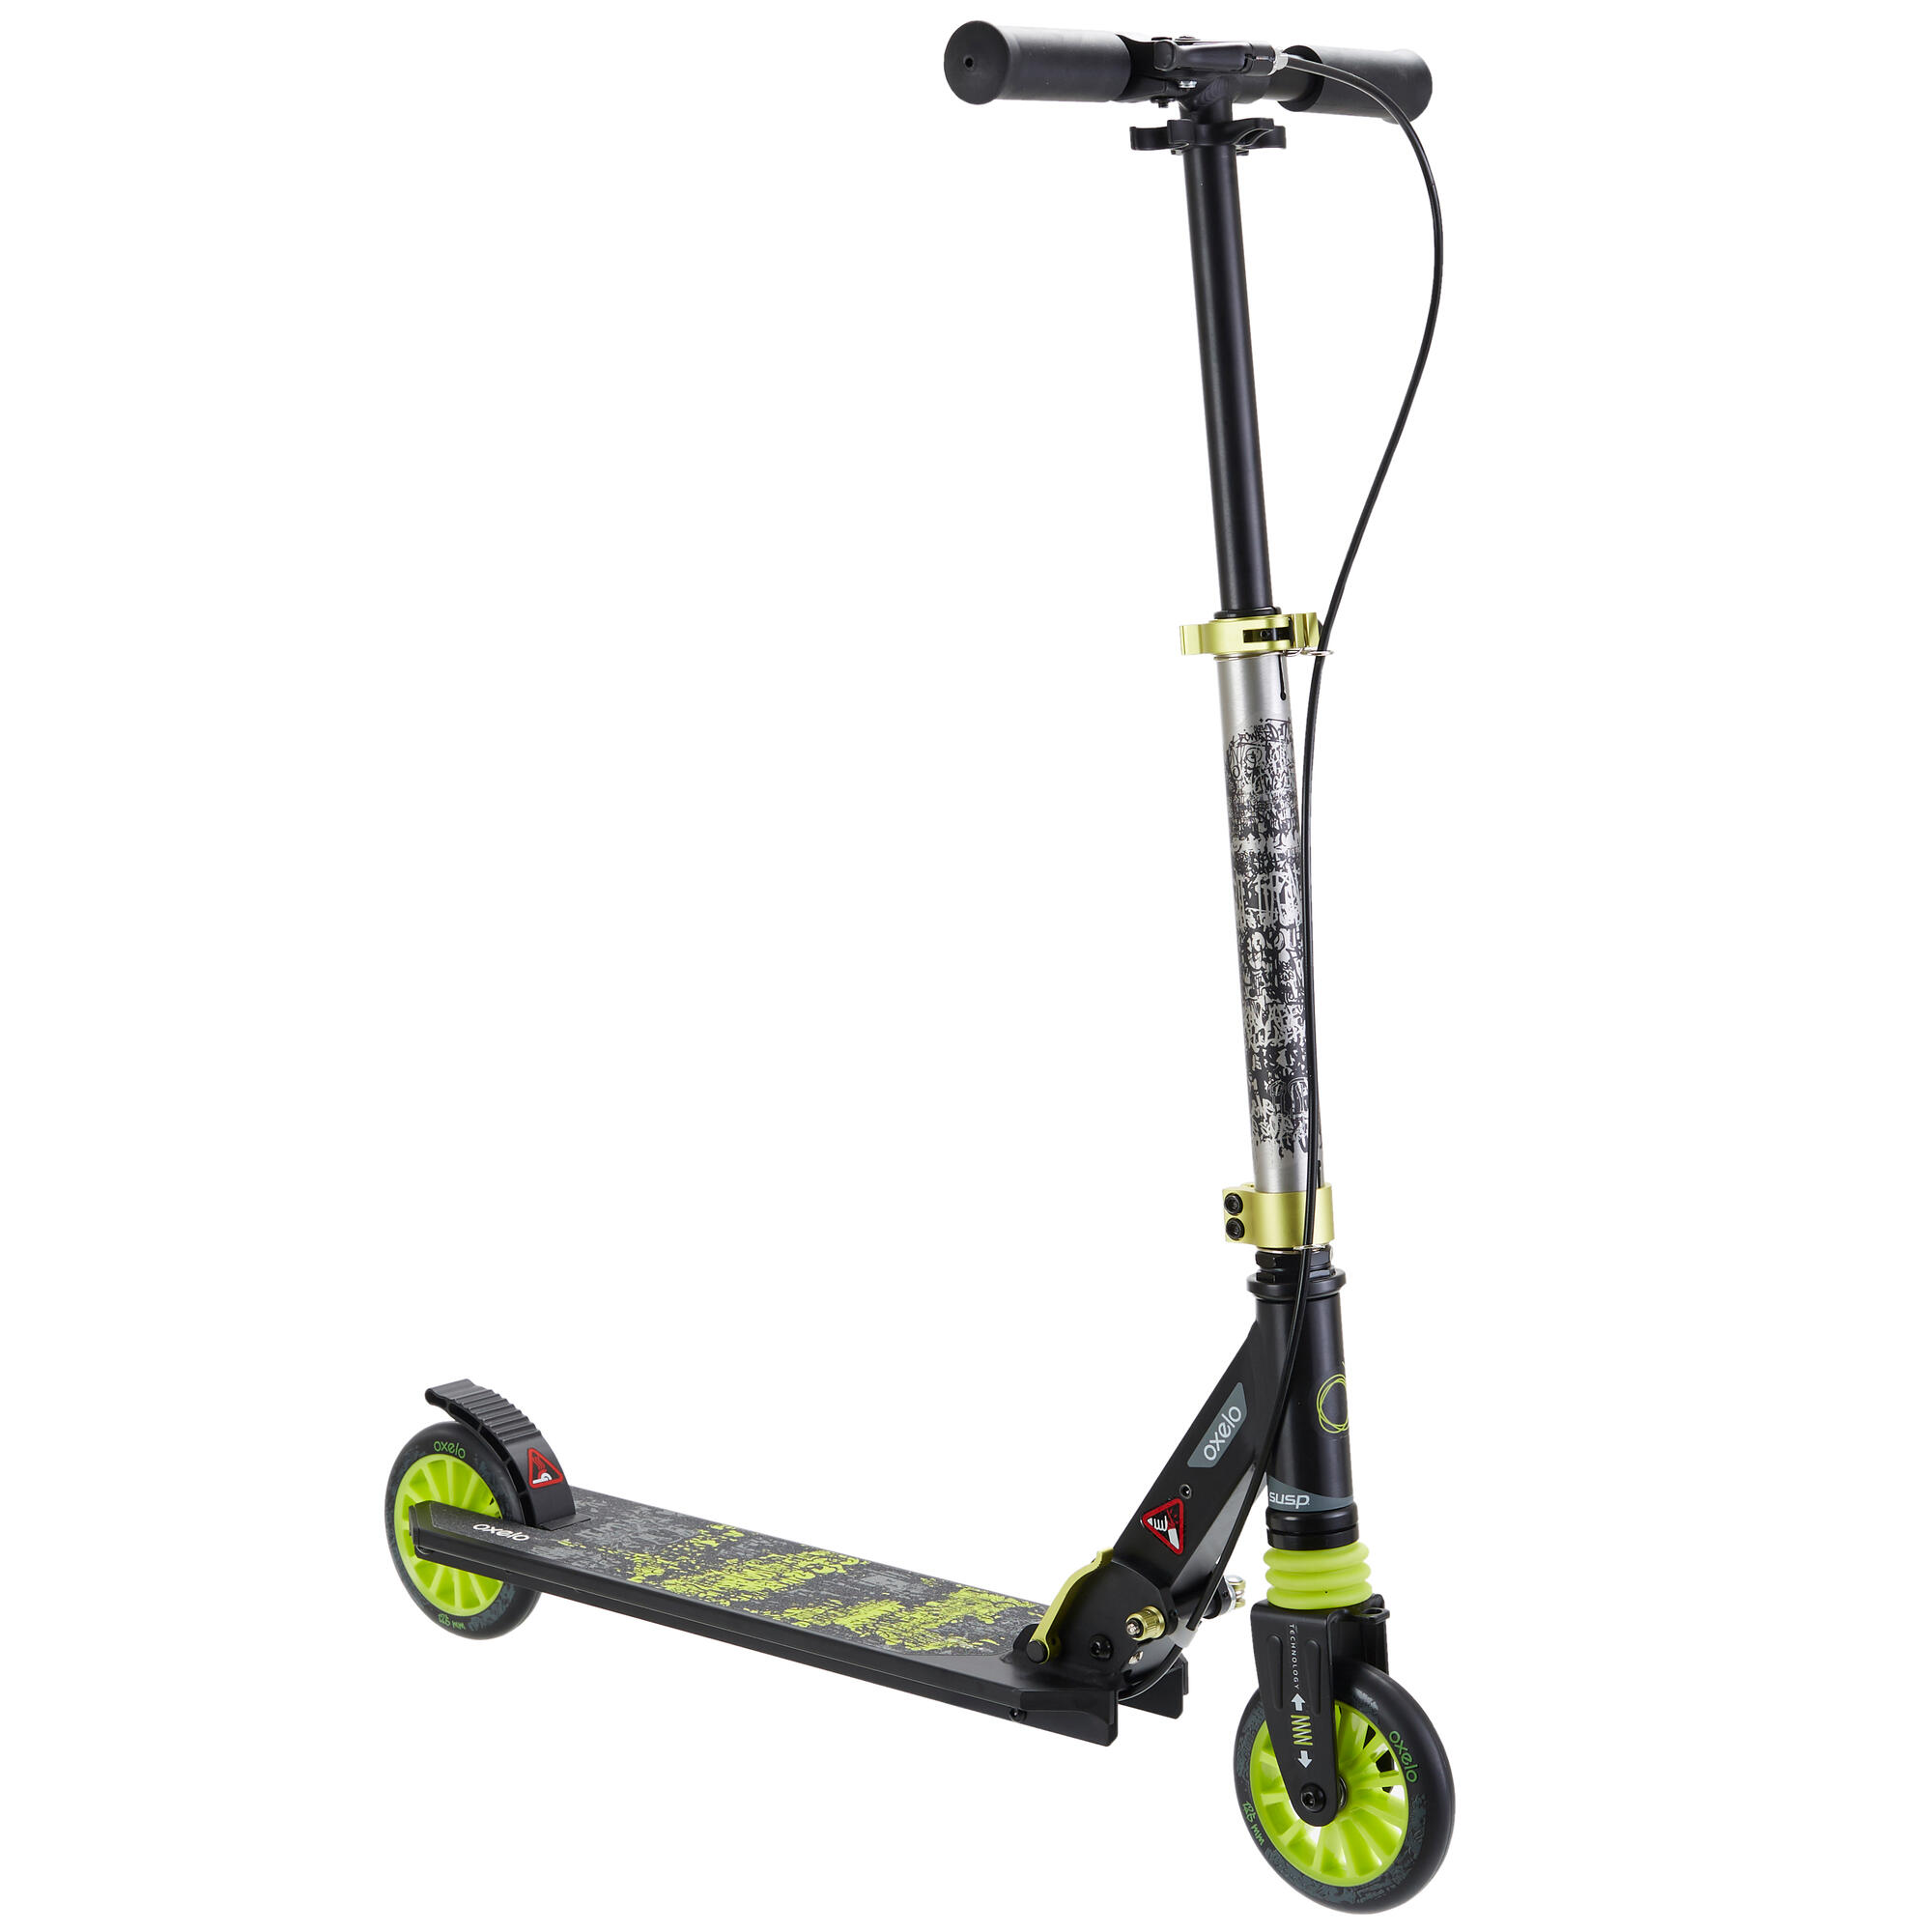 Mid 5 Kids' Scooter with Handlebar Brake and Suspension